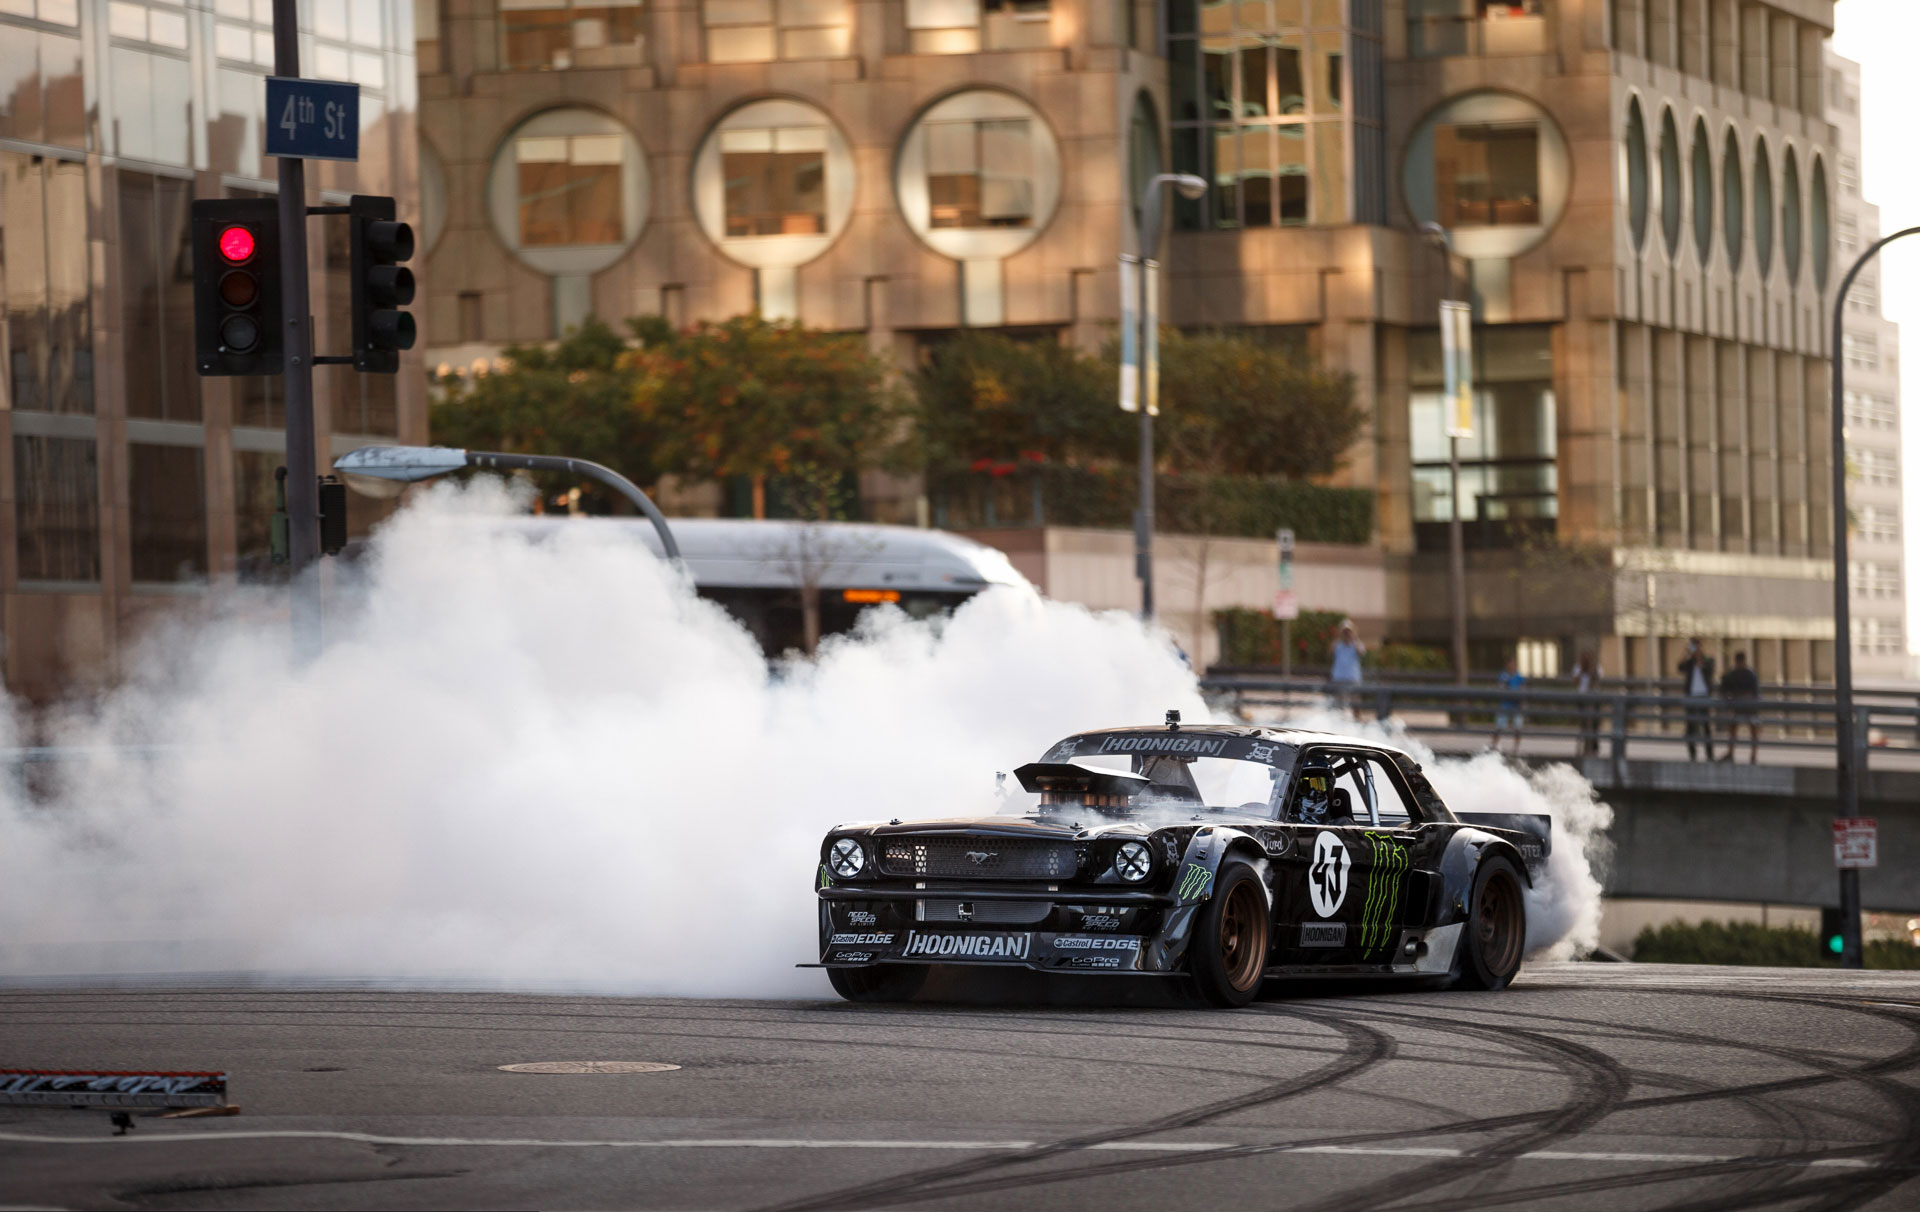 If you've ever bought a can of Monster Energy drink, we'd like to take a moment to personally thank you. Why? Because you helped make the Hoonicorn RTR possible. This '65 Ford Mustang packs a 410 cubic-inch Roush Yates Ford V8 good for 845 horsepower, and that's not even the insane part.